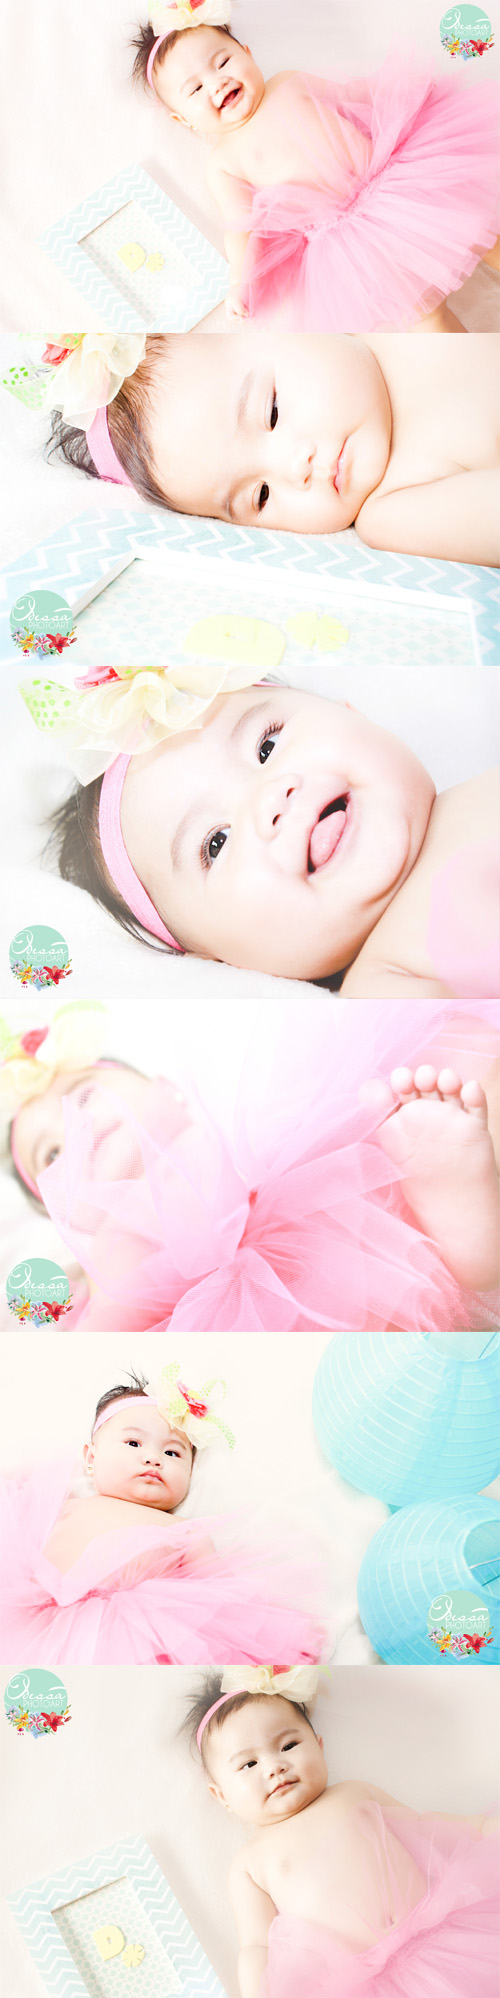 Desree ♥ Baby Photo Session / The Lightbox PhotoArt - www.facebook.com/TheLightboxPhotoArt